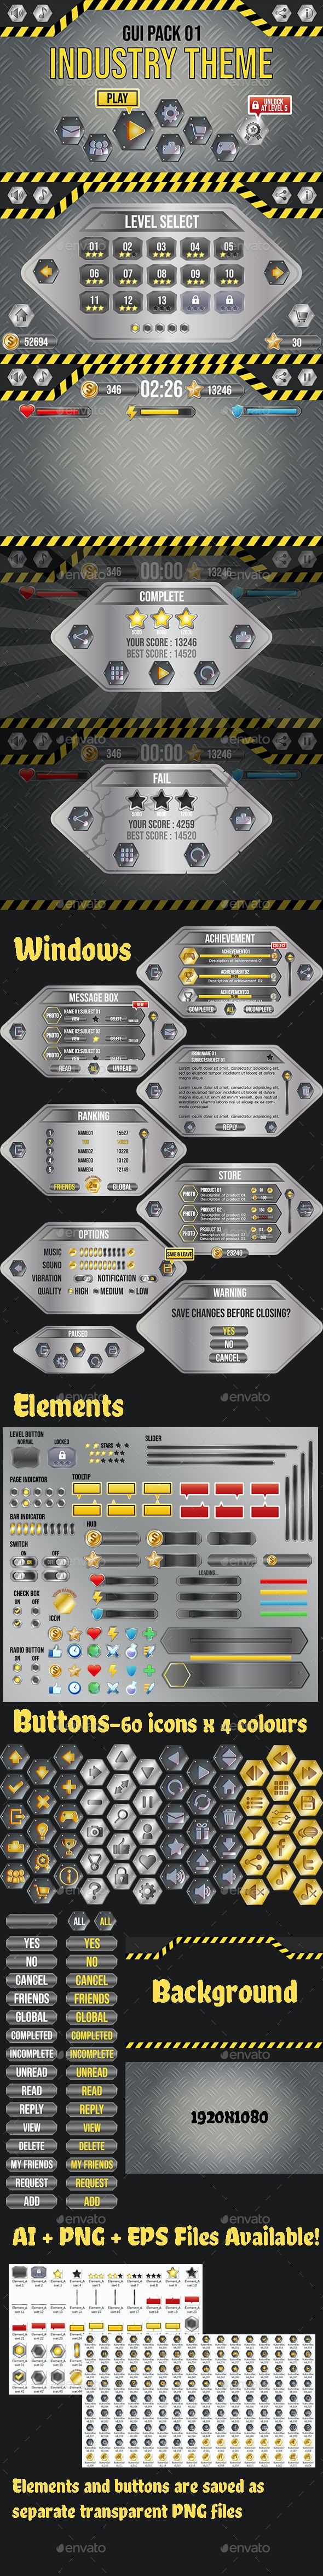 Industry Theme GUI Pack 1 - User Interfaces Game Assets